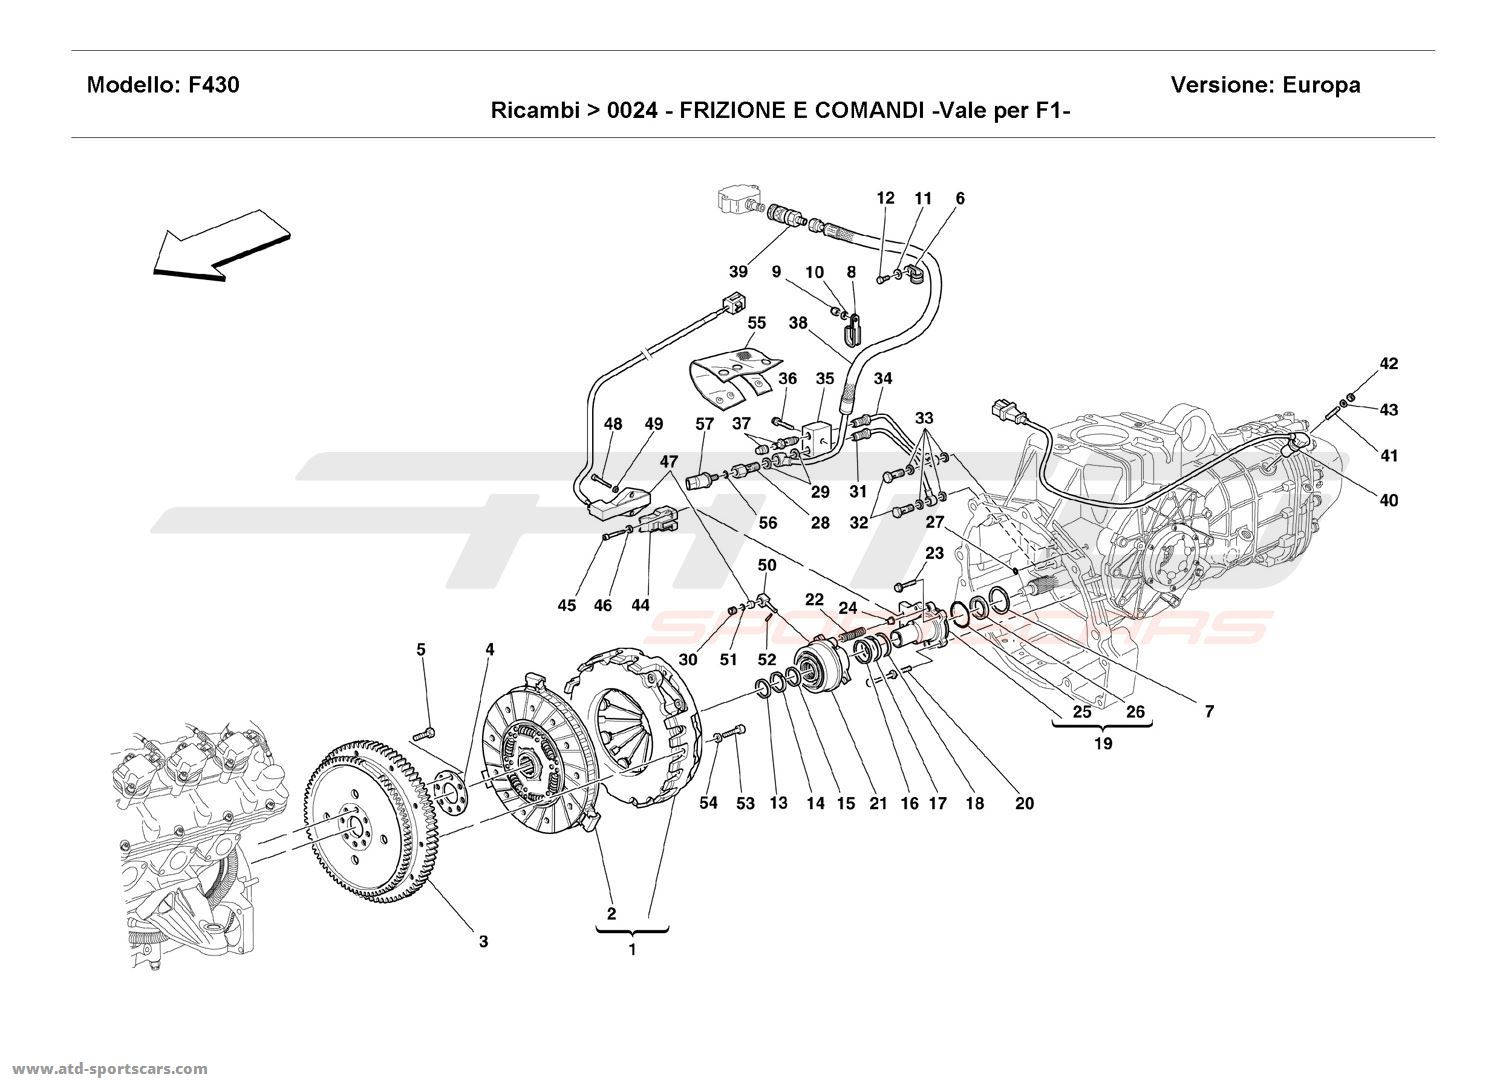 CLUTCH AND CONTROLS - Valid for F1 -